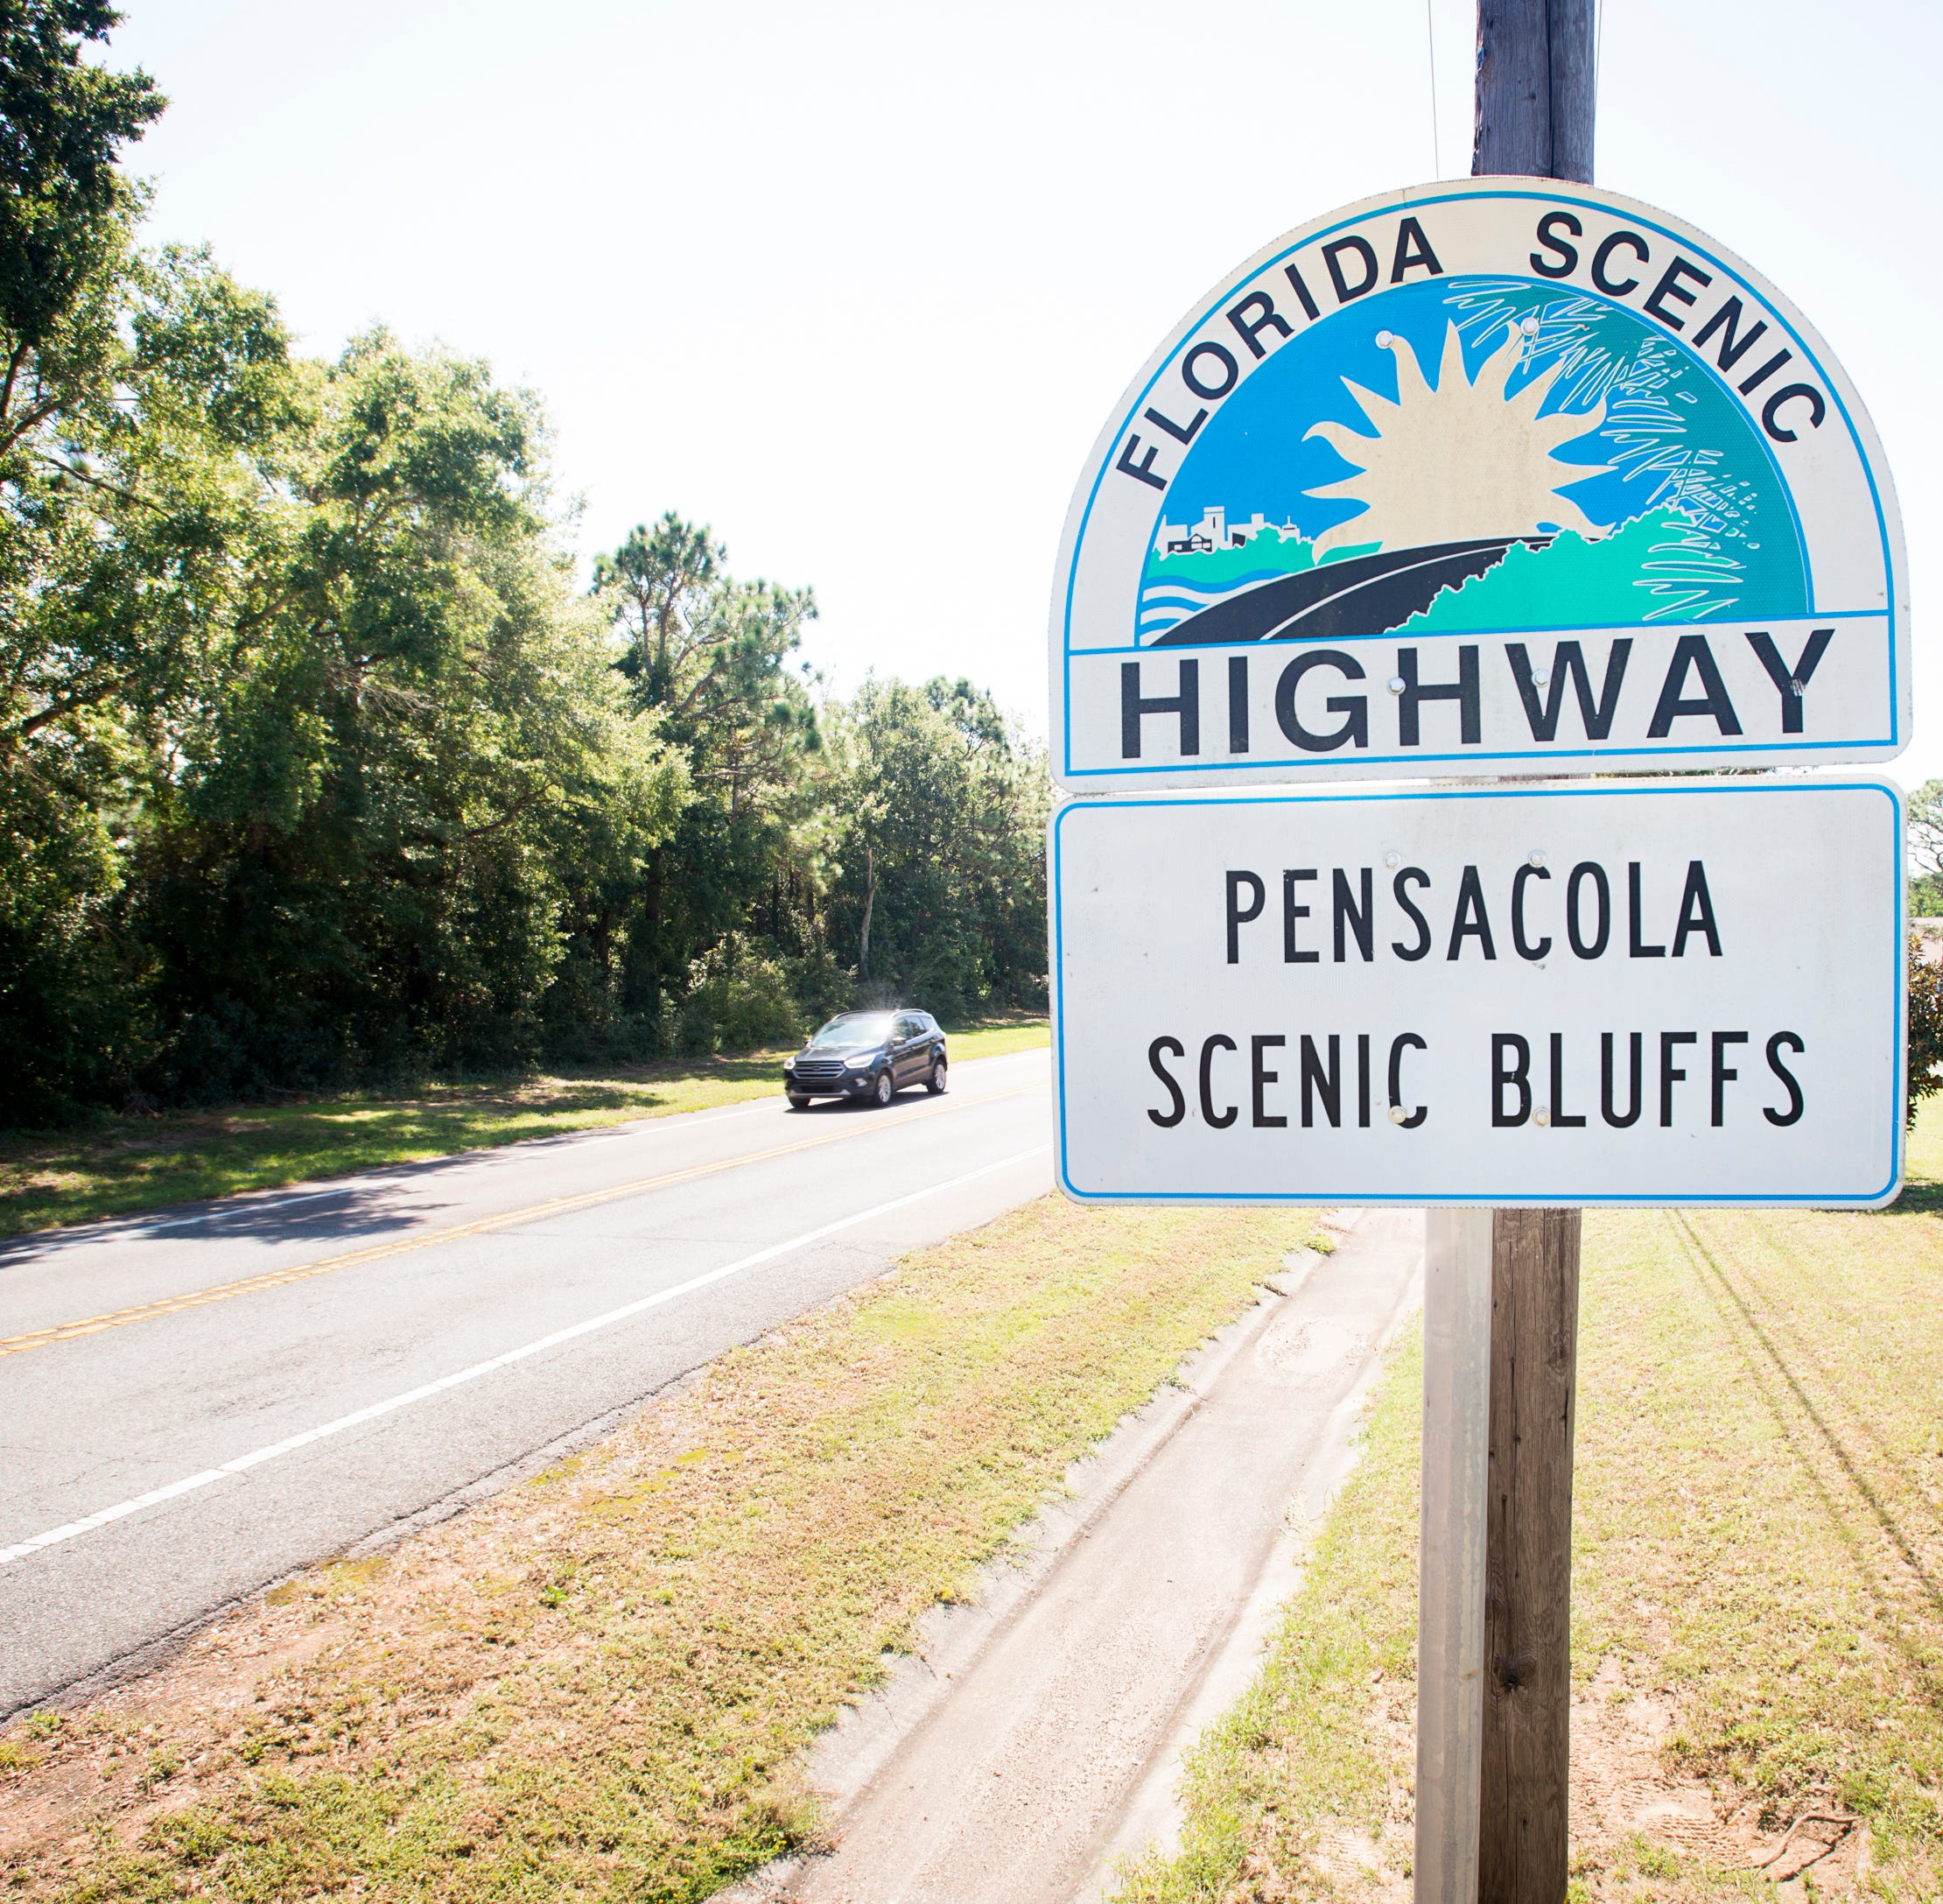 Scenic Highway Trolley Tour and Bay Cruise takes you on a trip through Pensacola history